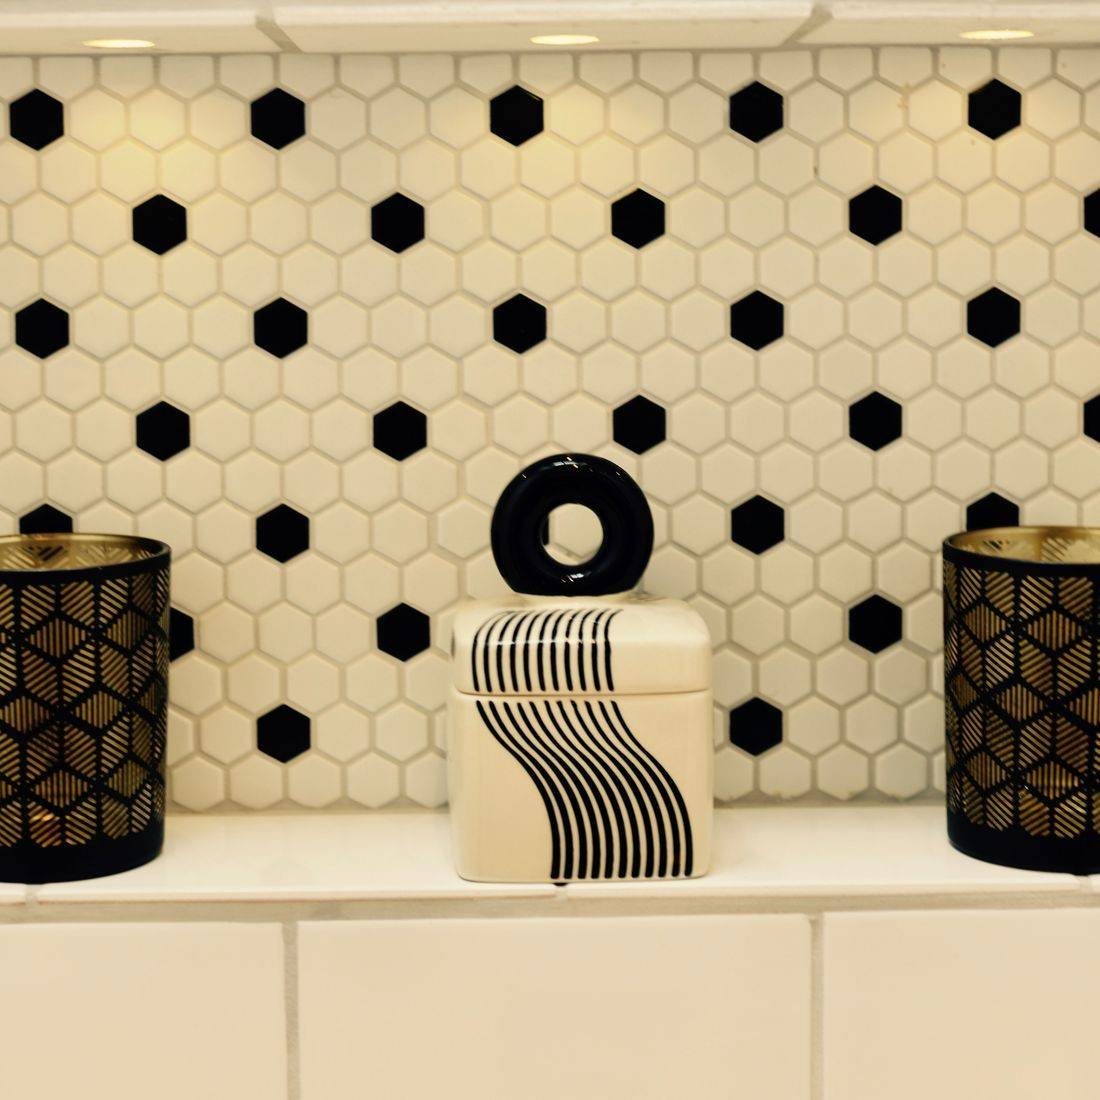 Stylish Gold, Black & White En-Suite by Alx Gunn Interiors East Sussex, UK, alxgunn-interiors.co.uk